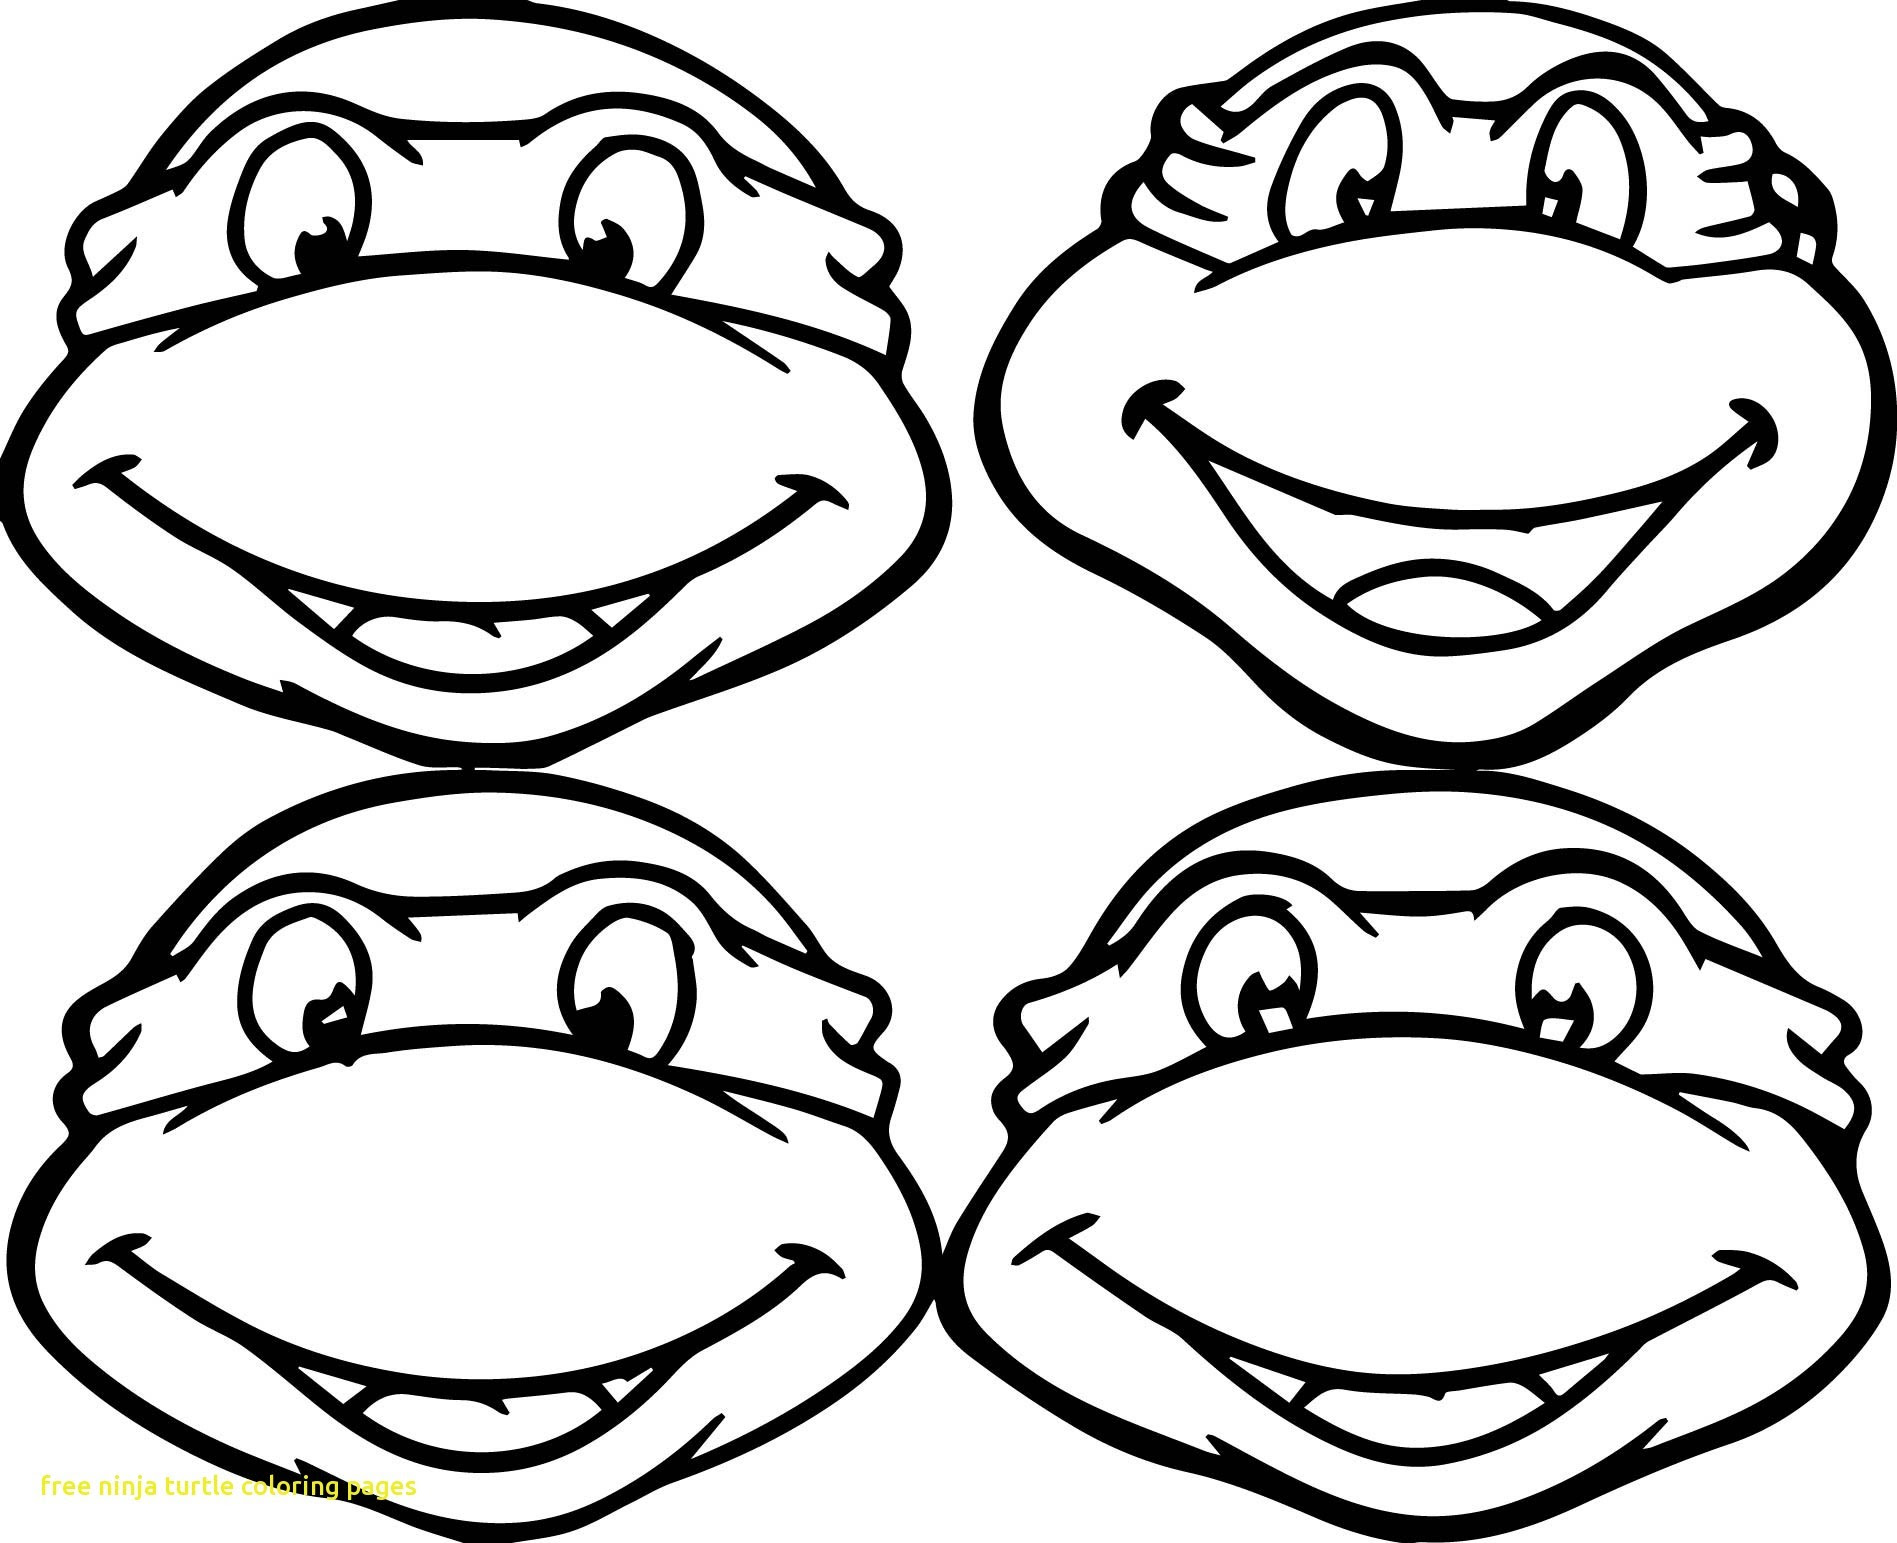 Detailed Turtle Coloring Pages at GetColorings.com | Free ...